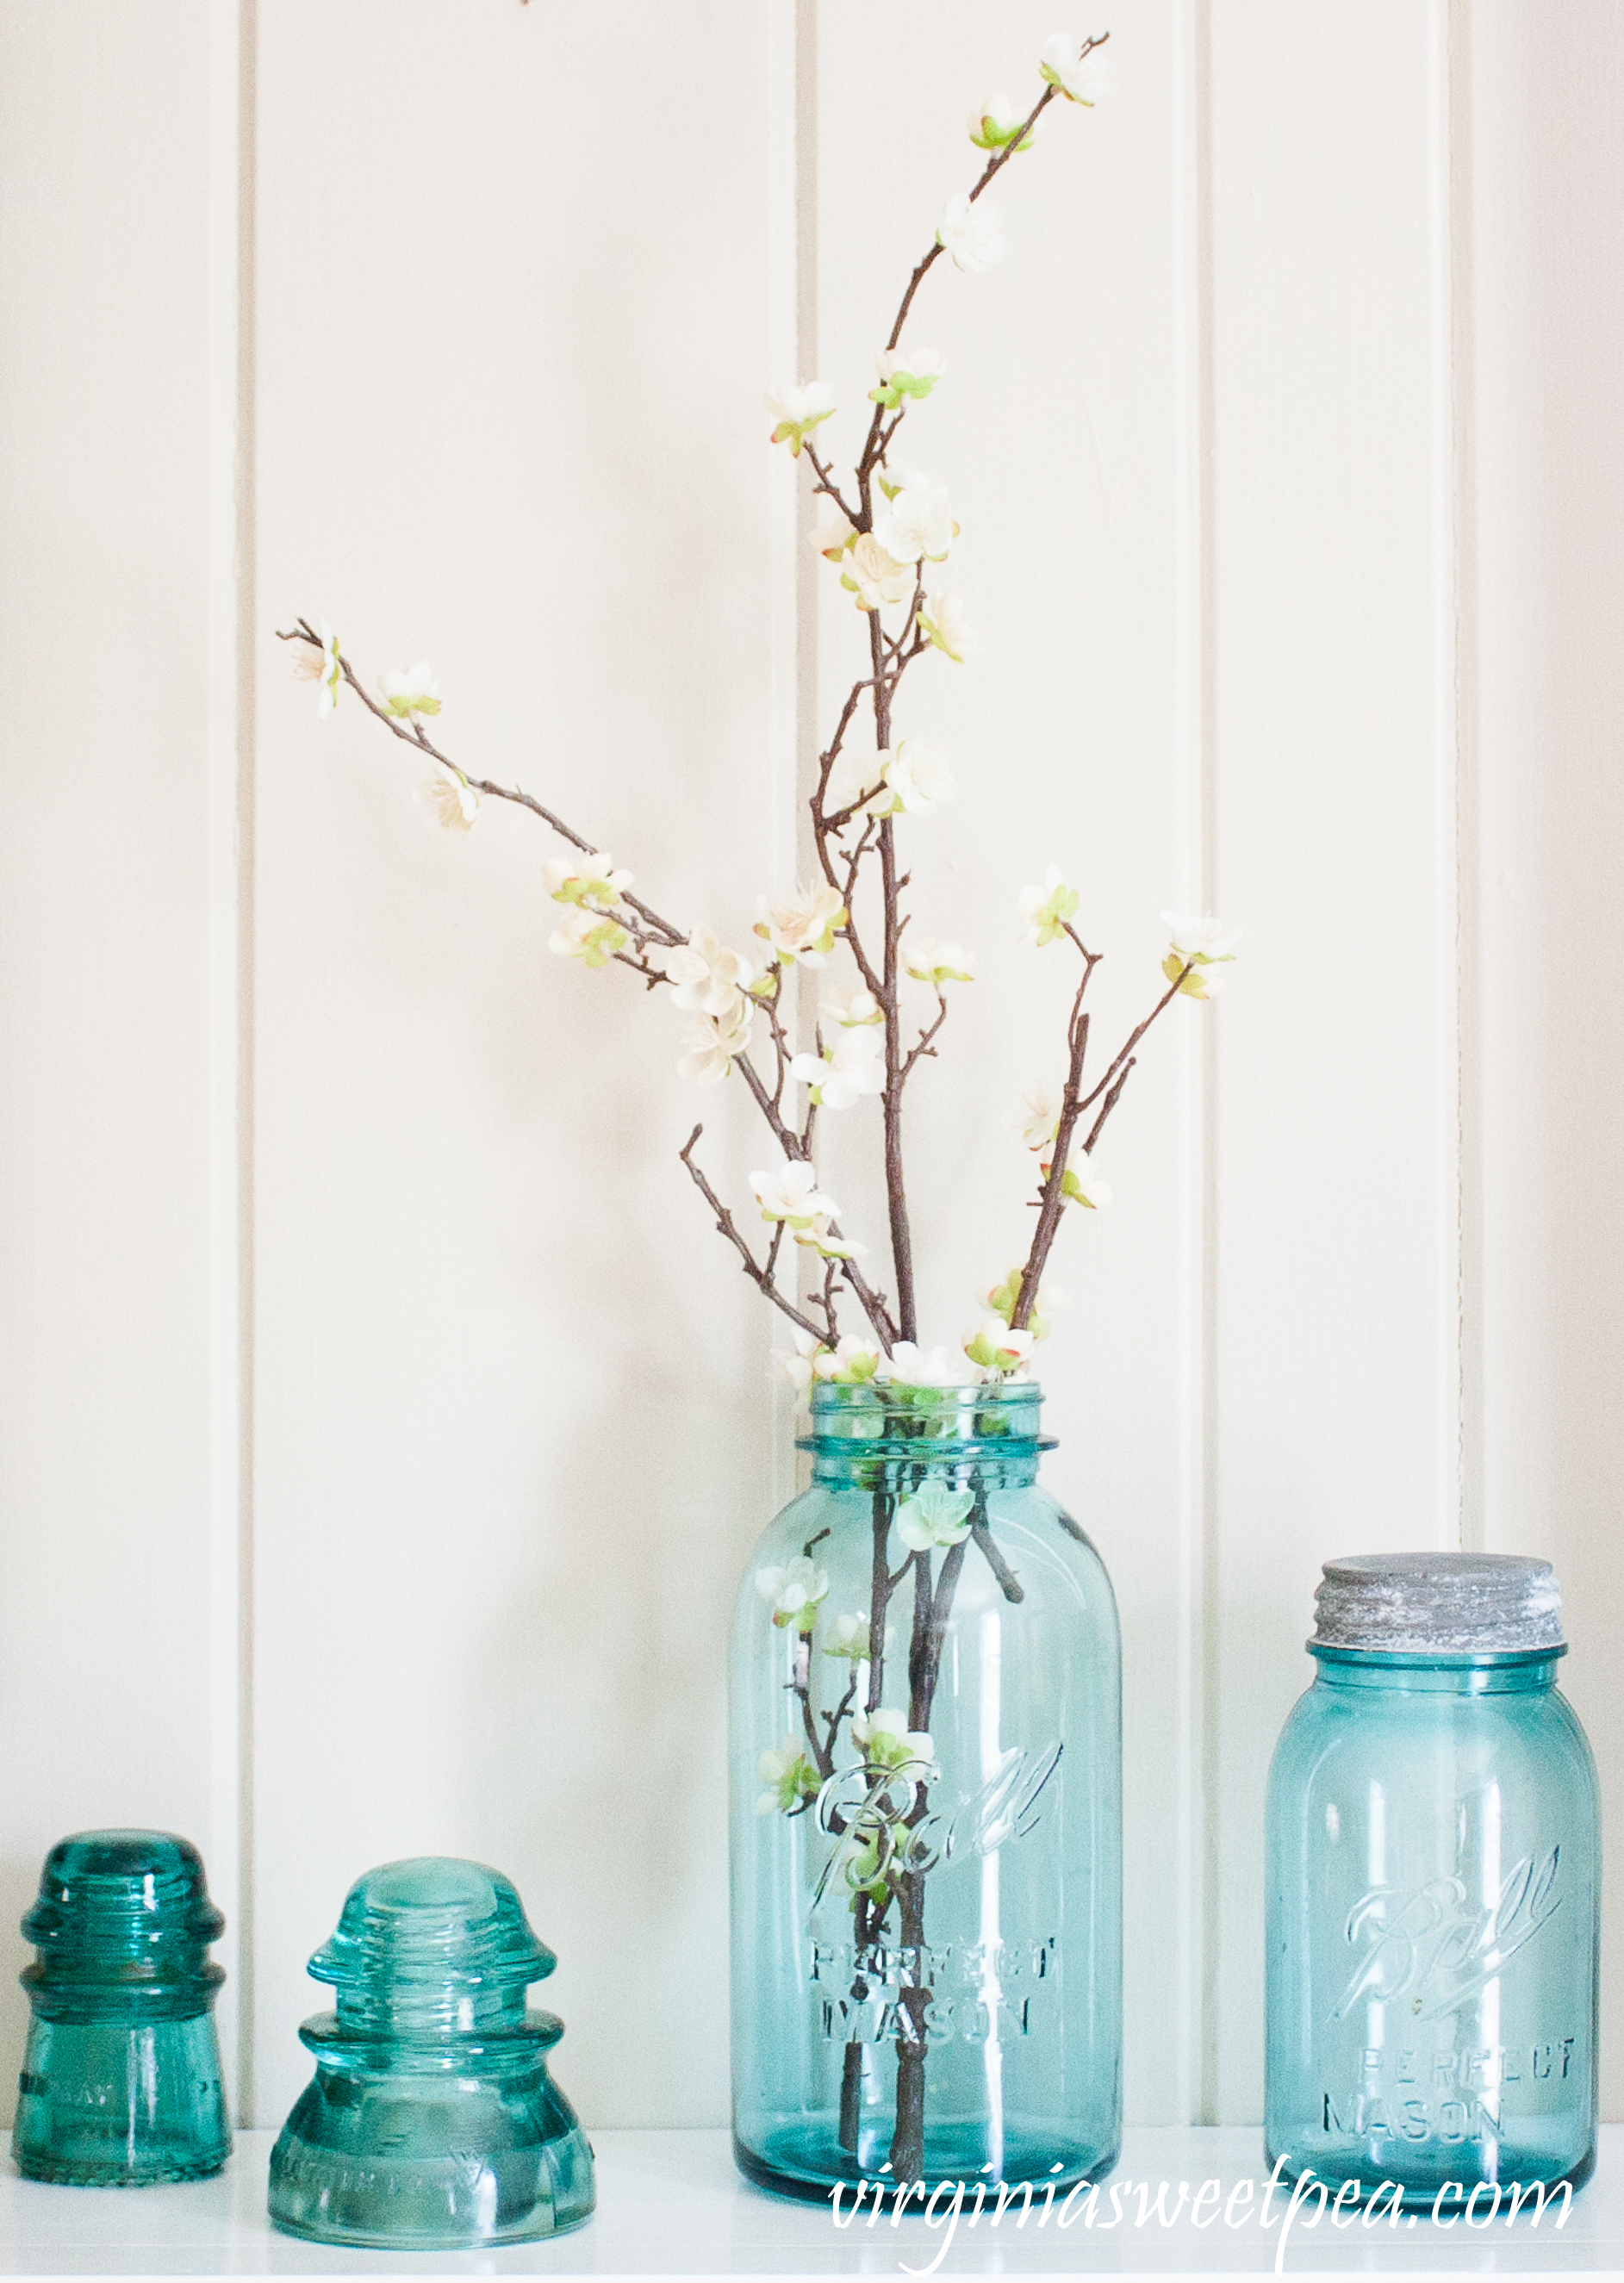 Vintage Blue Ball Jars and Insulators used on a Spring Mantel - #springmantel #springdecor #vintage #vintagedecor #balljars